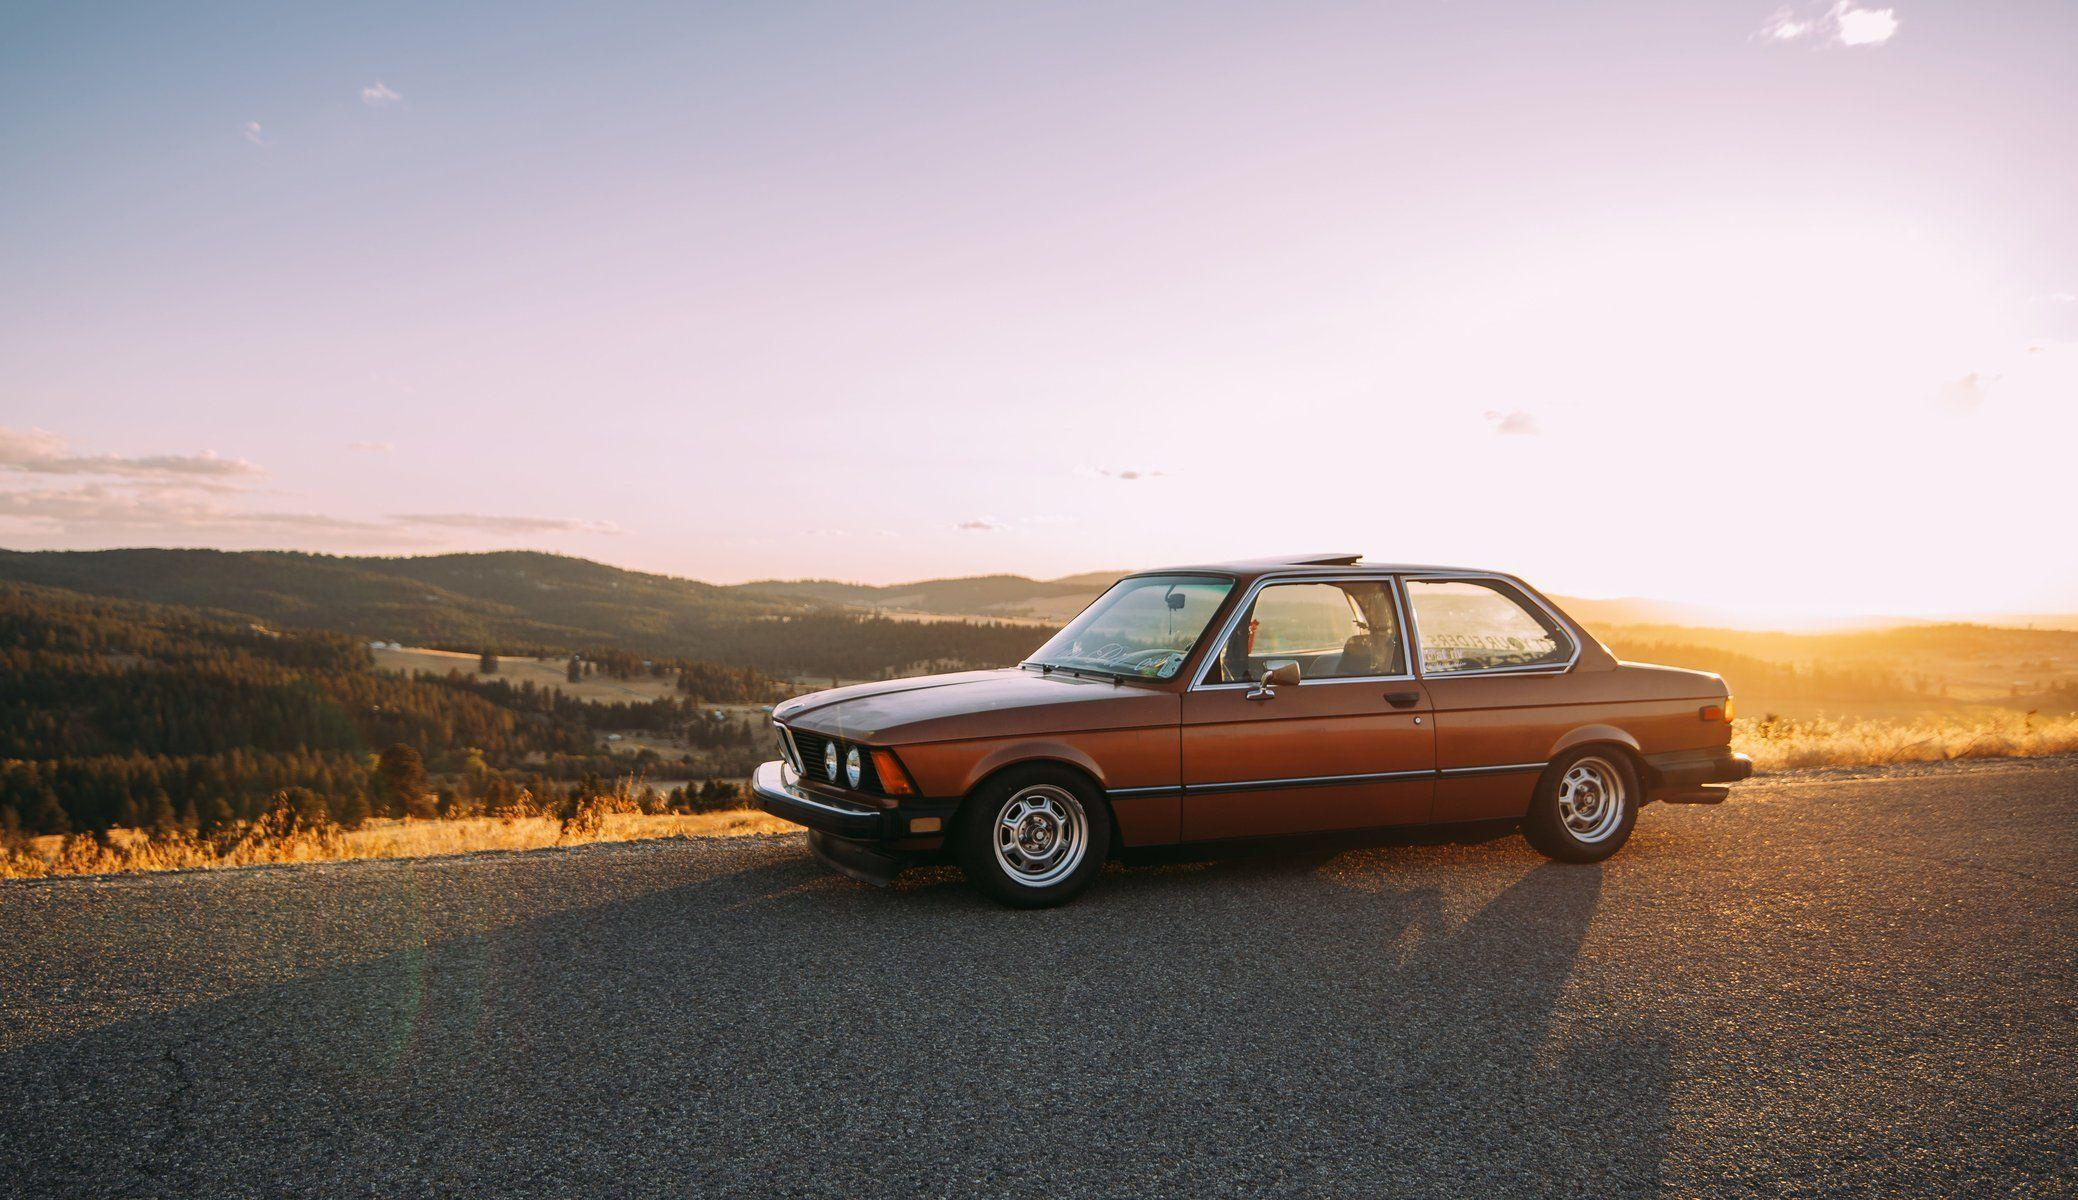 bmw e21 shadow road wheel light valley hills horizon clouds sky